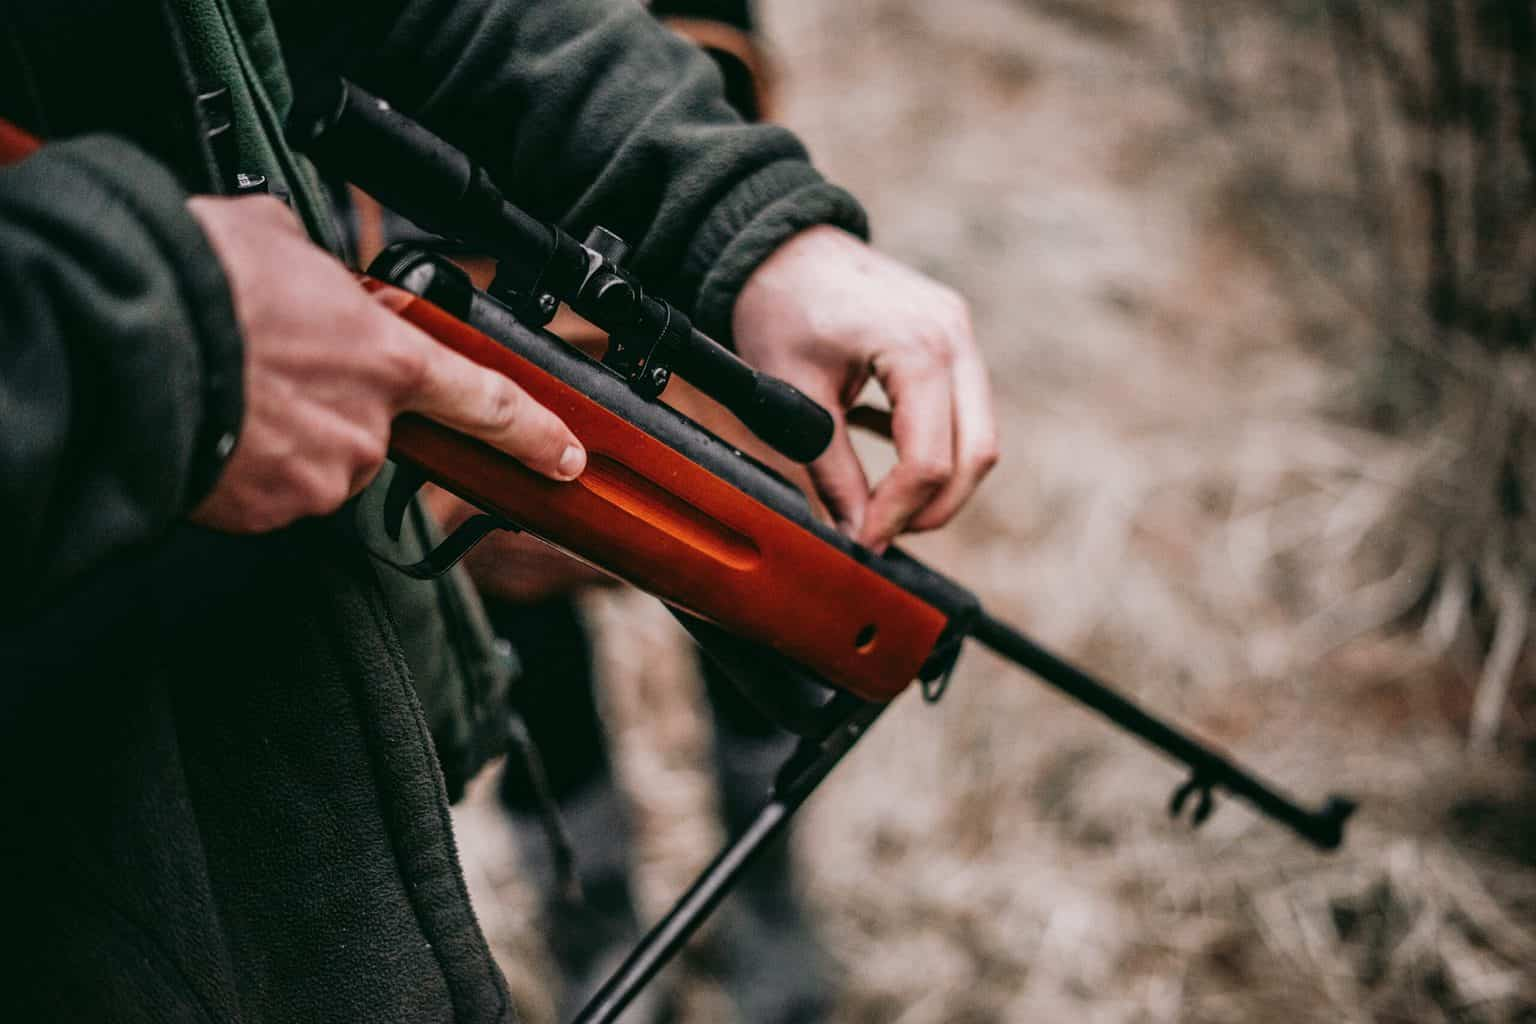 A person holding down a red sniper hunting rifle